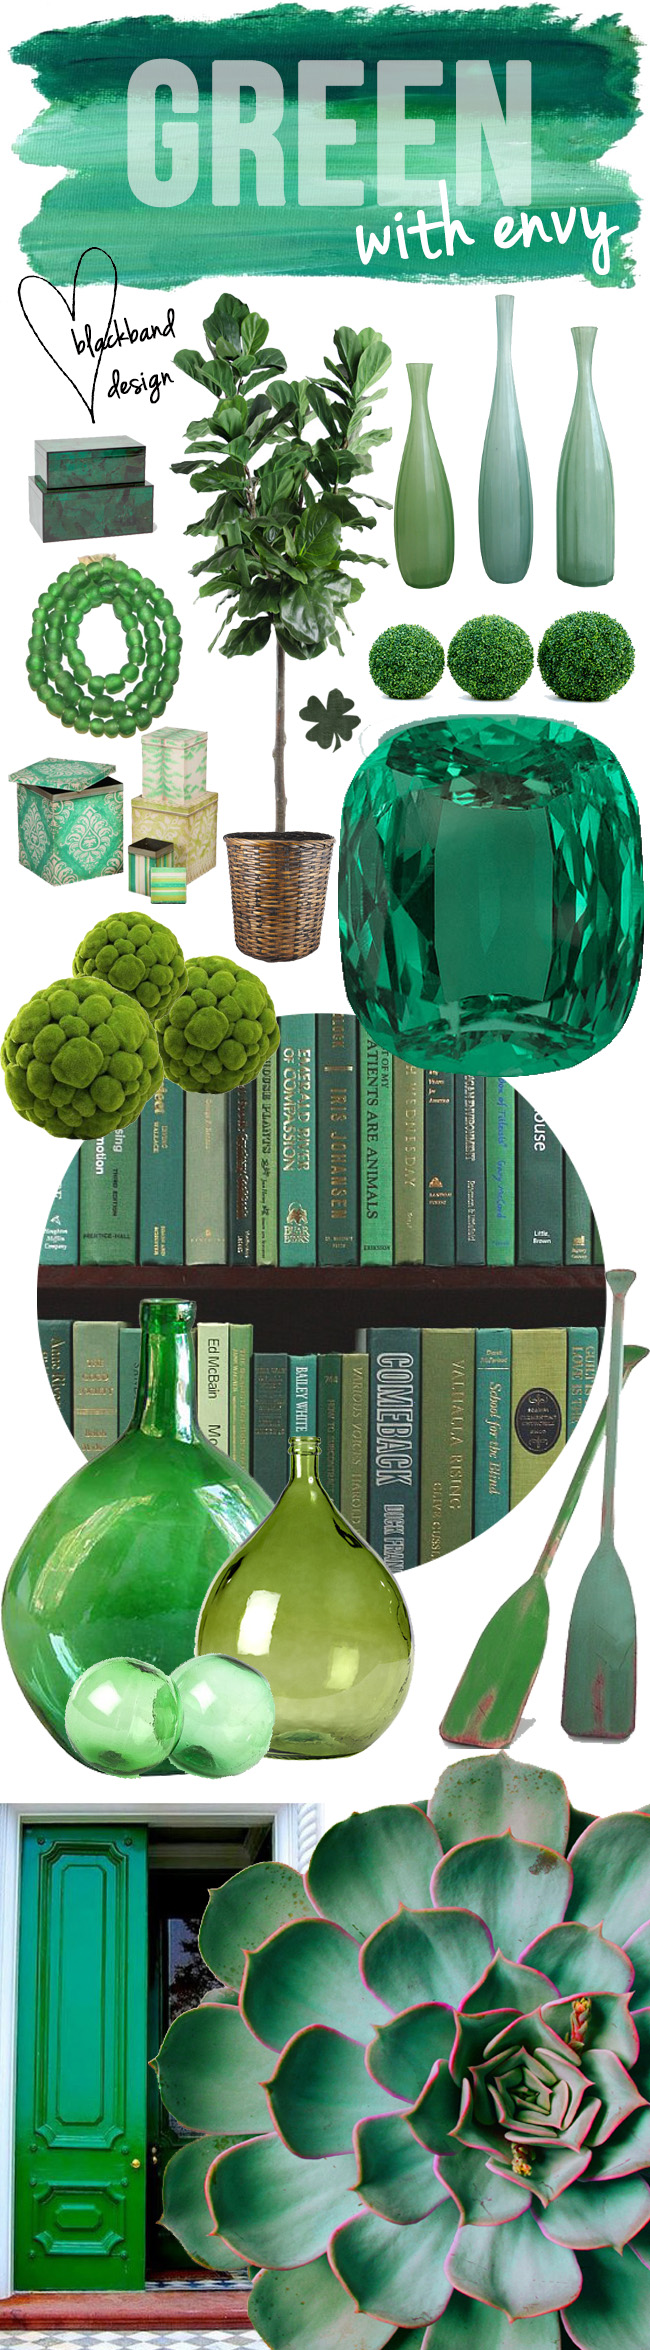 green accessories for st.patricks day